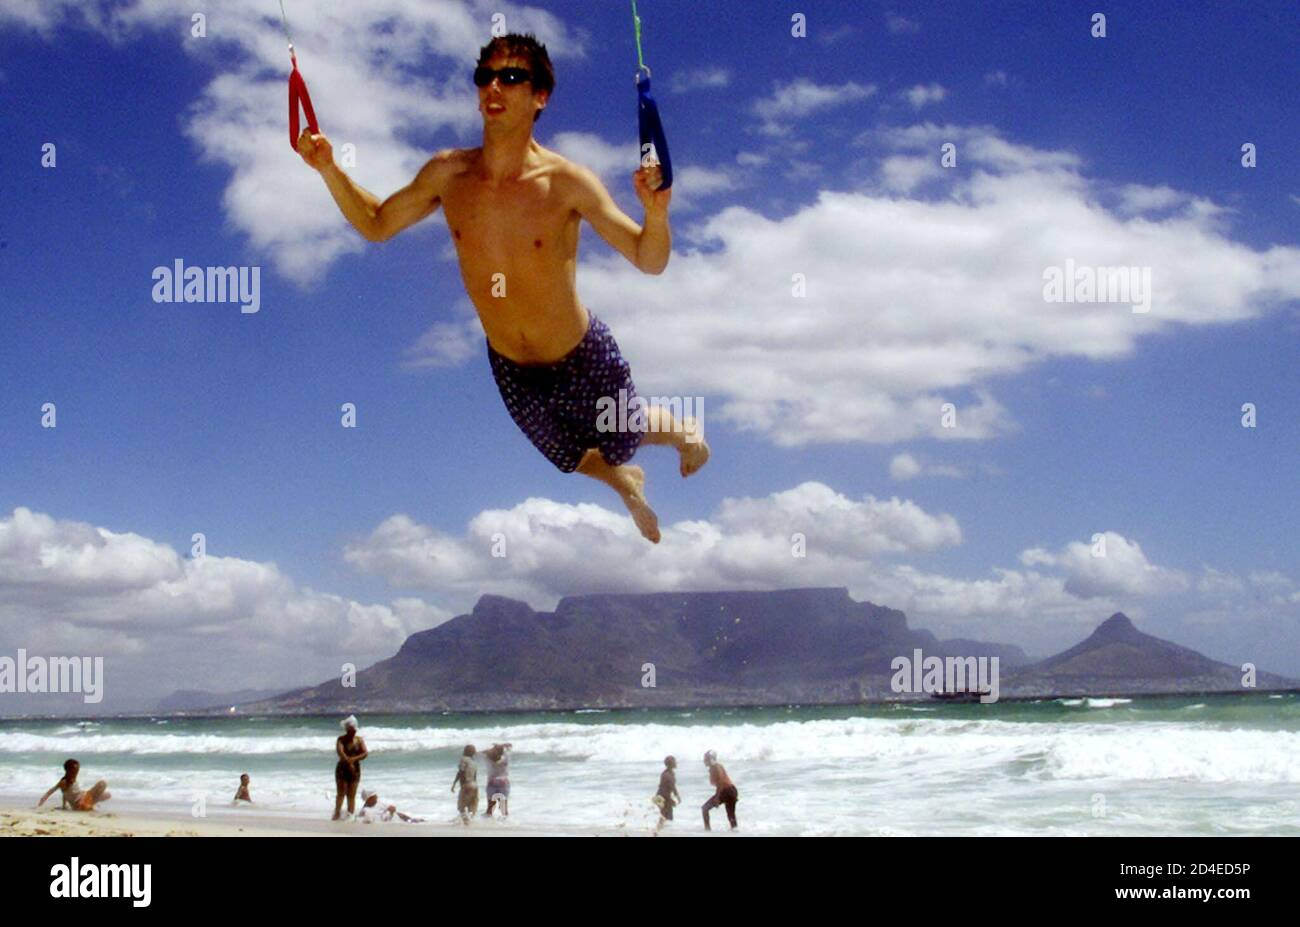 British tourist William Hayley-Borrell gets airbourne as he celebrates the New Year practising power-kiting moves on Blouberg beach near Cape Town, January 1, 2002. Drawn by the warm southern hemishere summer weather and spectacular backdrops, as well as a favourable exchange rate following the sharp fall in the Rand, it is estimated that about three million visitors will visit the city over the holiday period. REUTERS BOOKS The Art of Sport REUTERS/Mike Hutchings  MH/WS Stock Photo